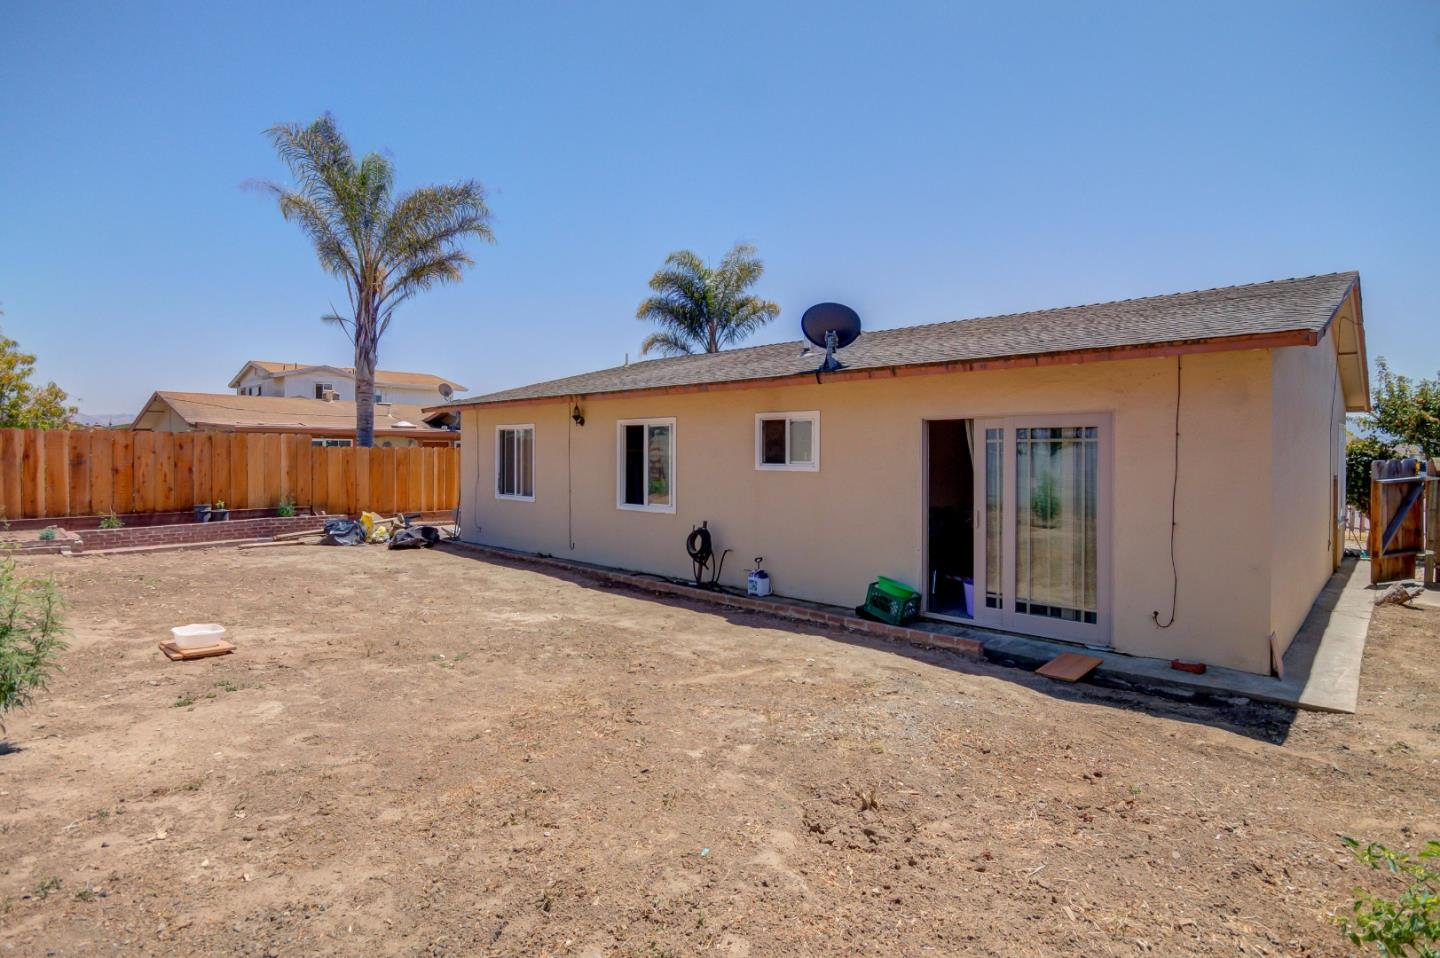 Additional photo for property listing at 1655 Siskiyou Drive  Salinas, California 93906 United States